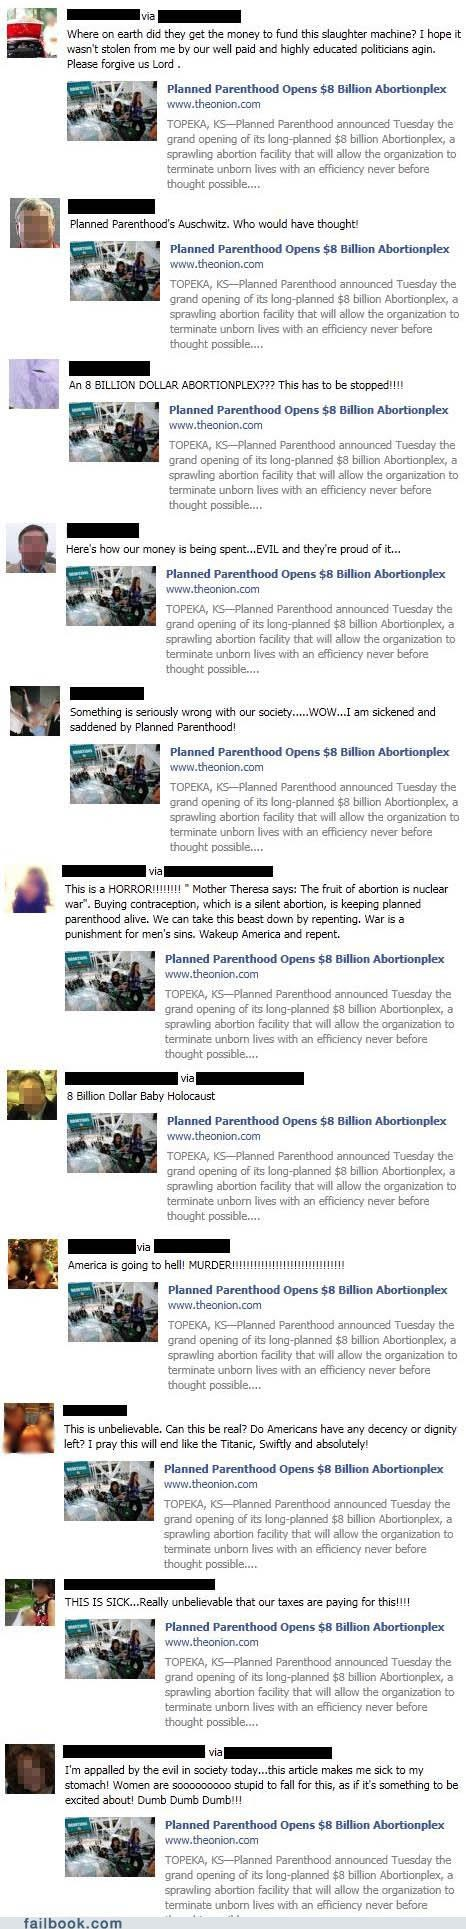 facepalm,Featured Fail,idiots,Planned Parenthood,really,the onion